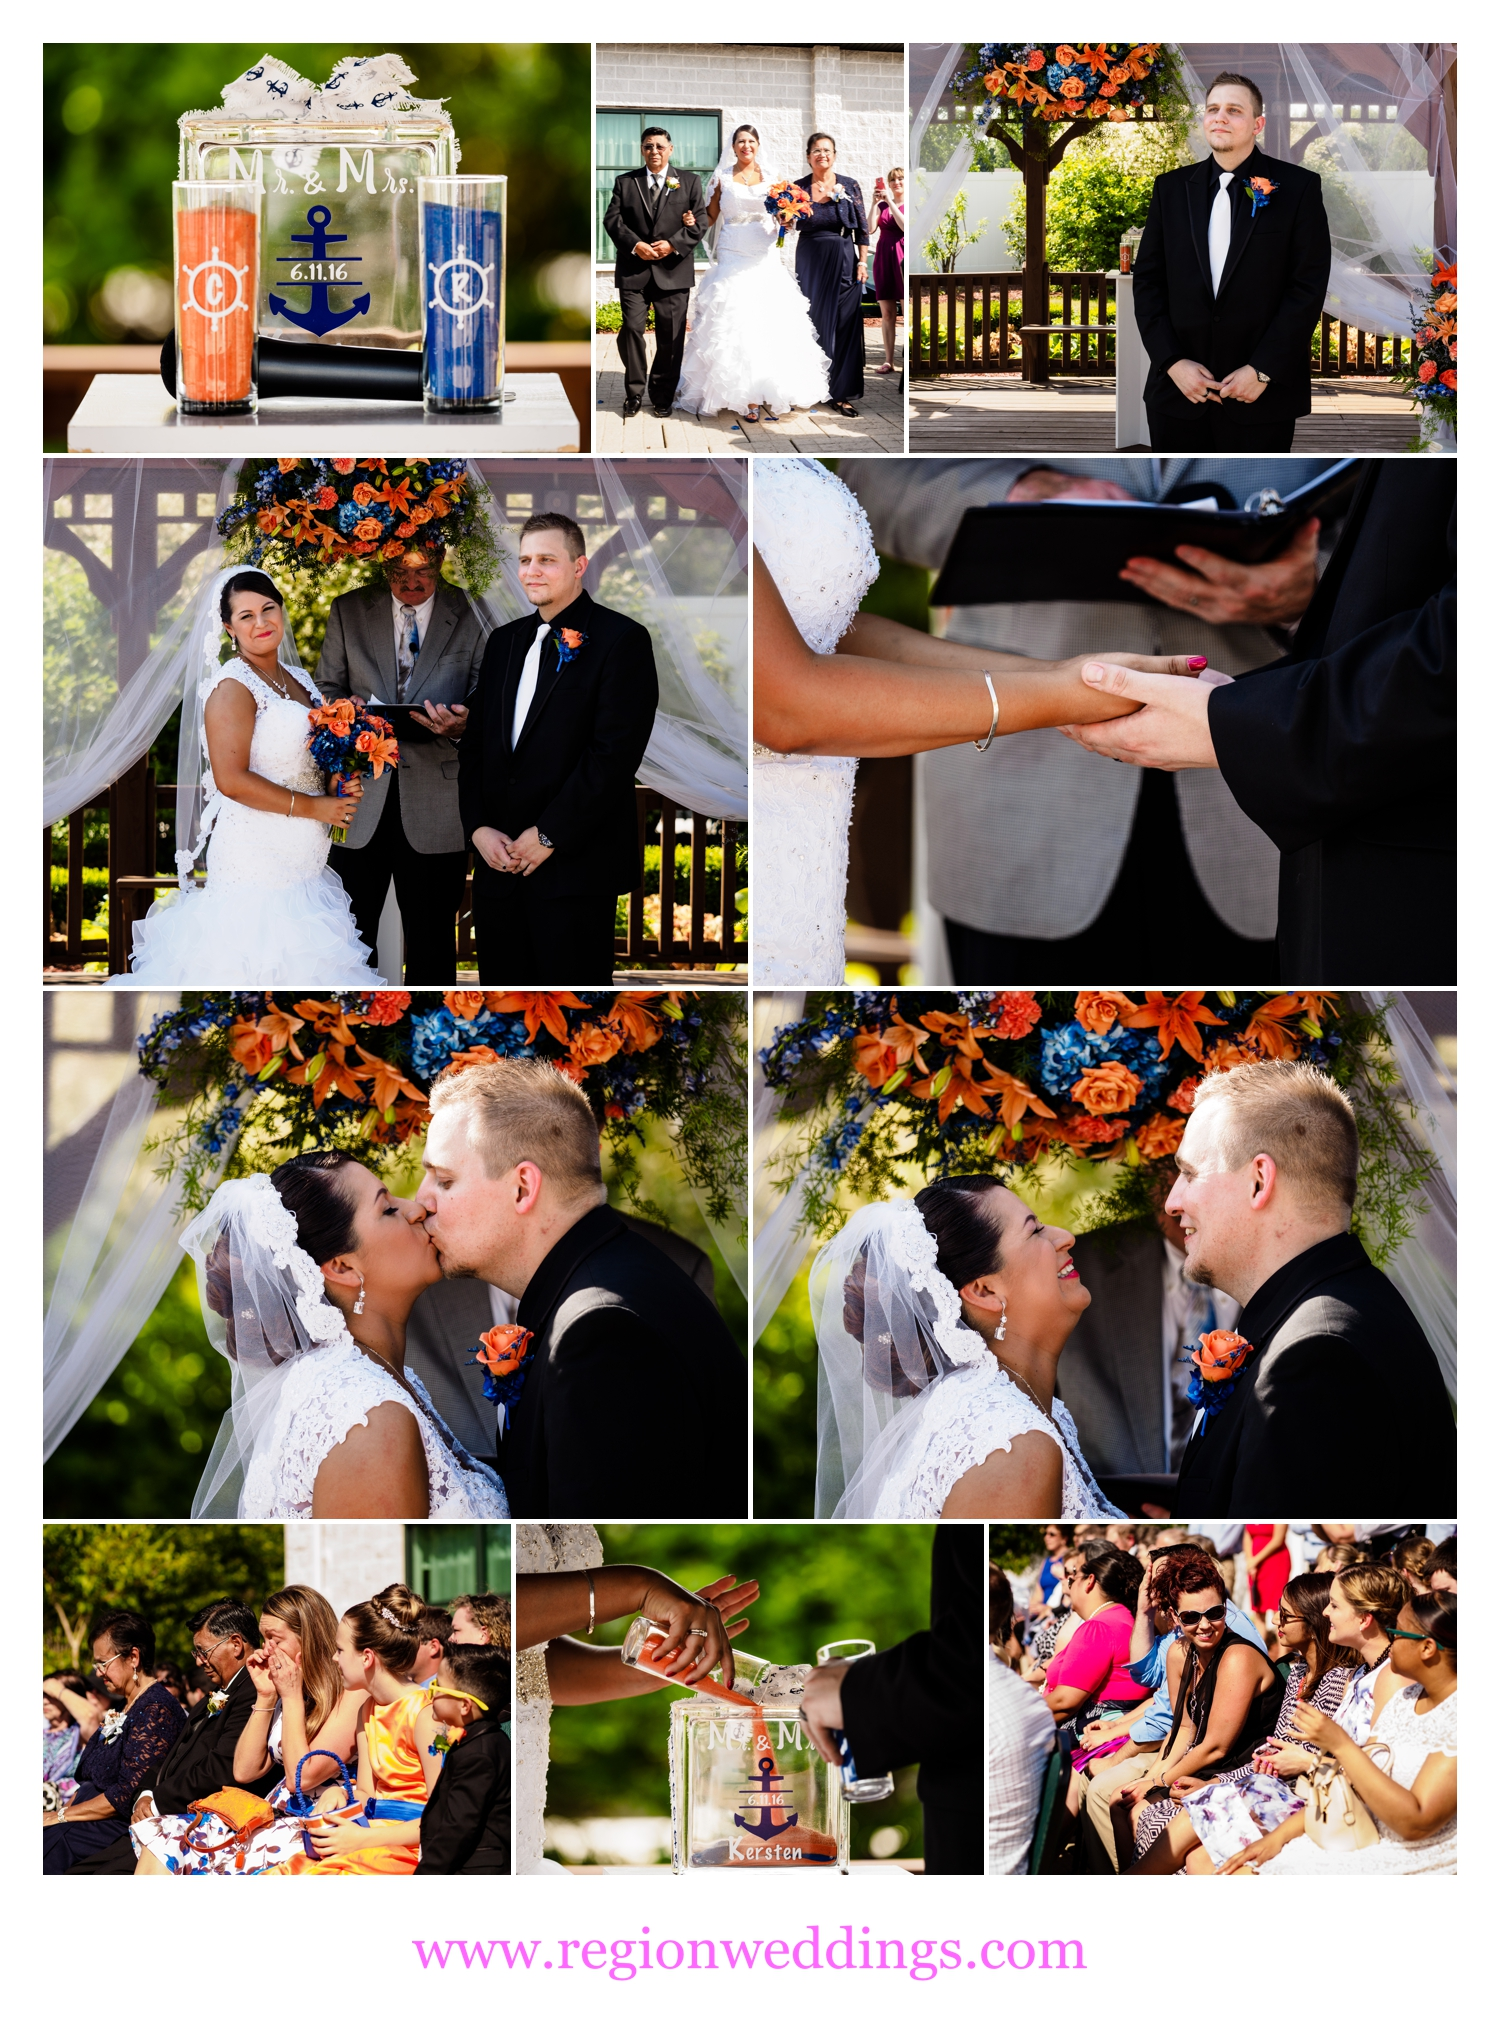 Outdoor, June wedding ceremony at The Patrician Banquet Center.